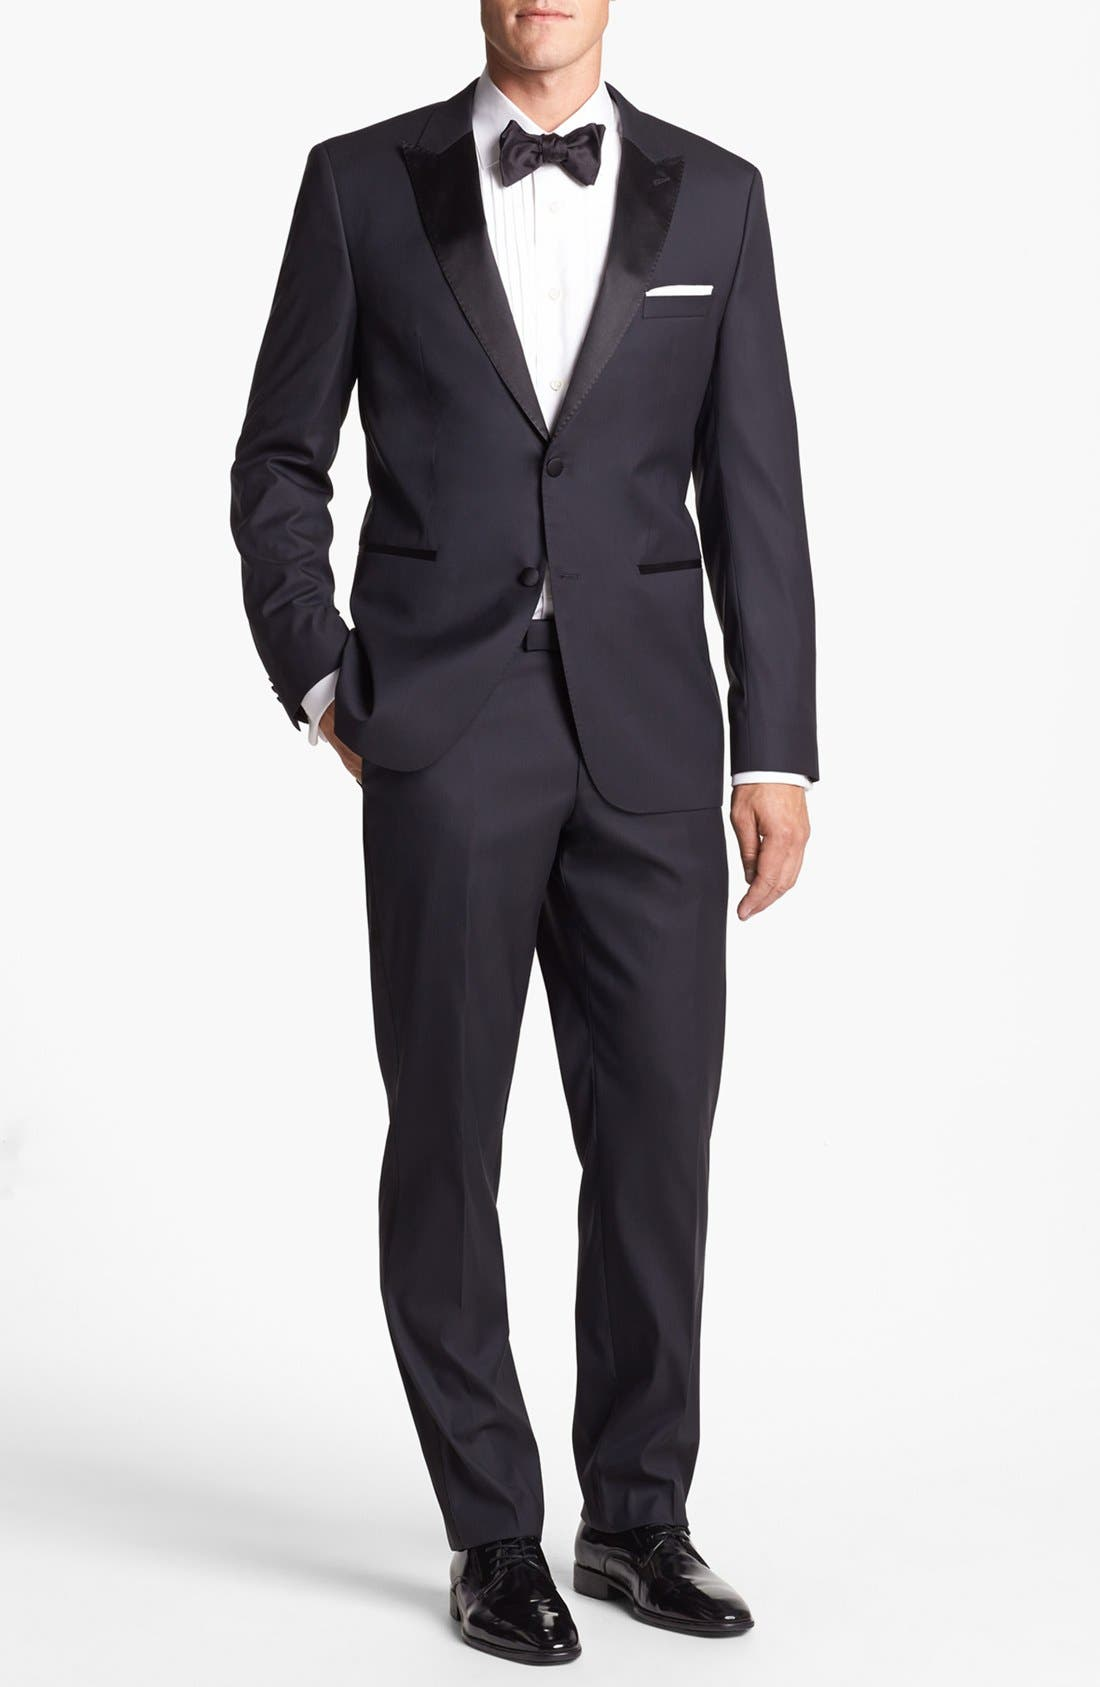 Main Image - BOSS HUGO BOSS 'Actor/Step' Trim Fit Tuxedo